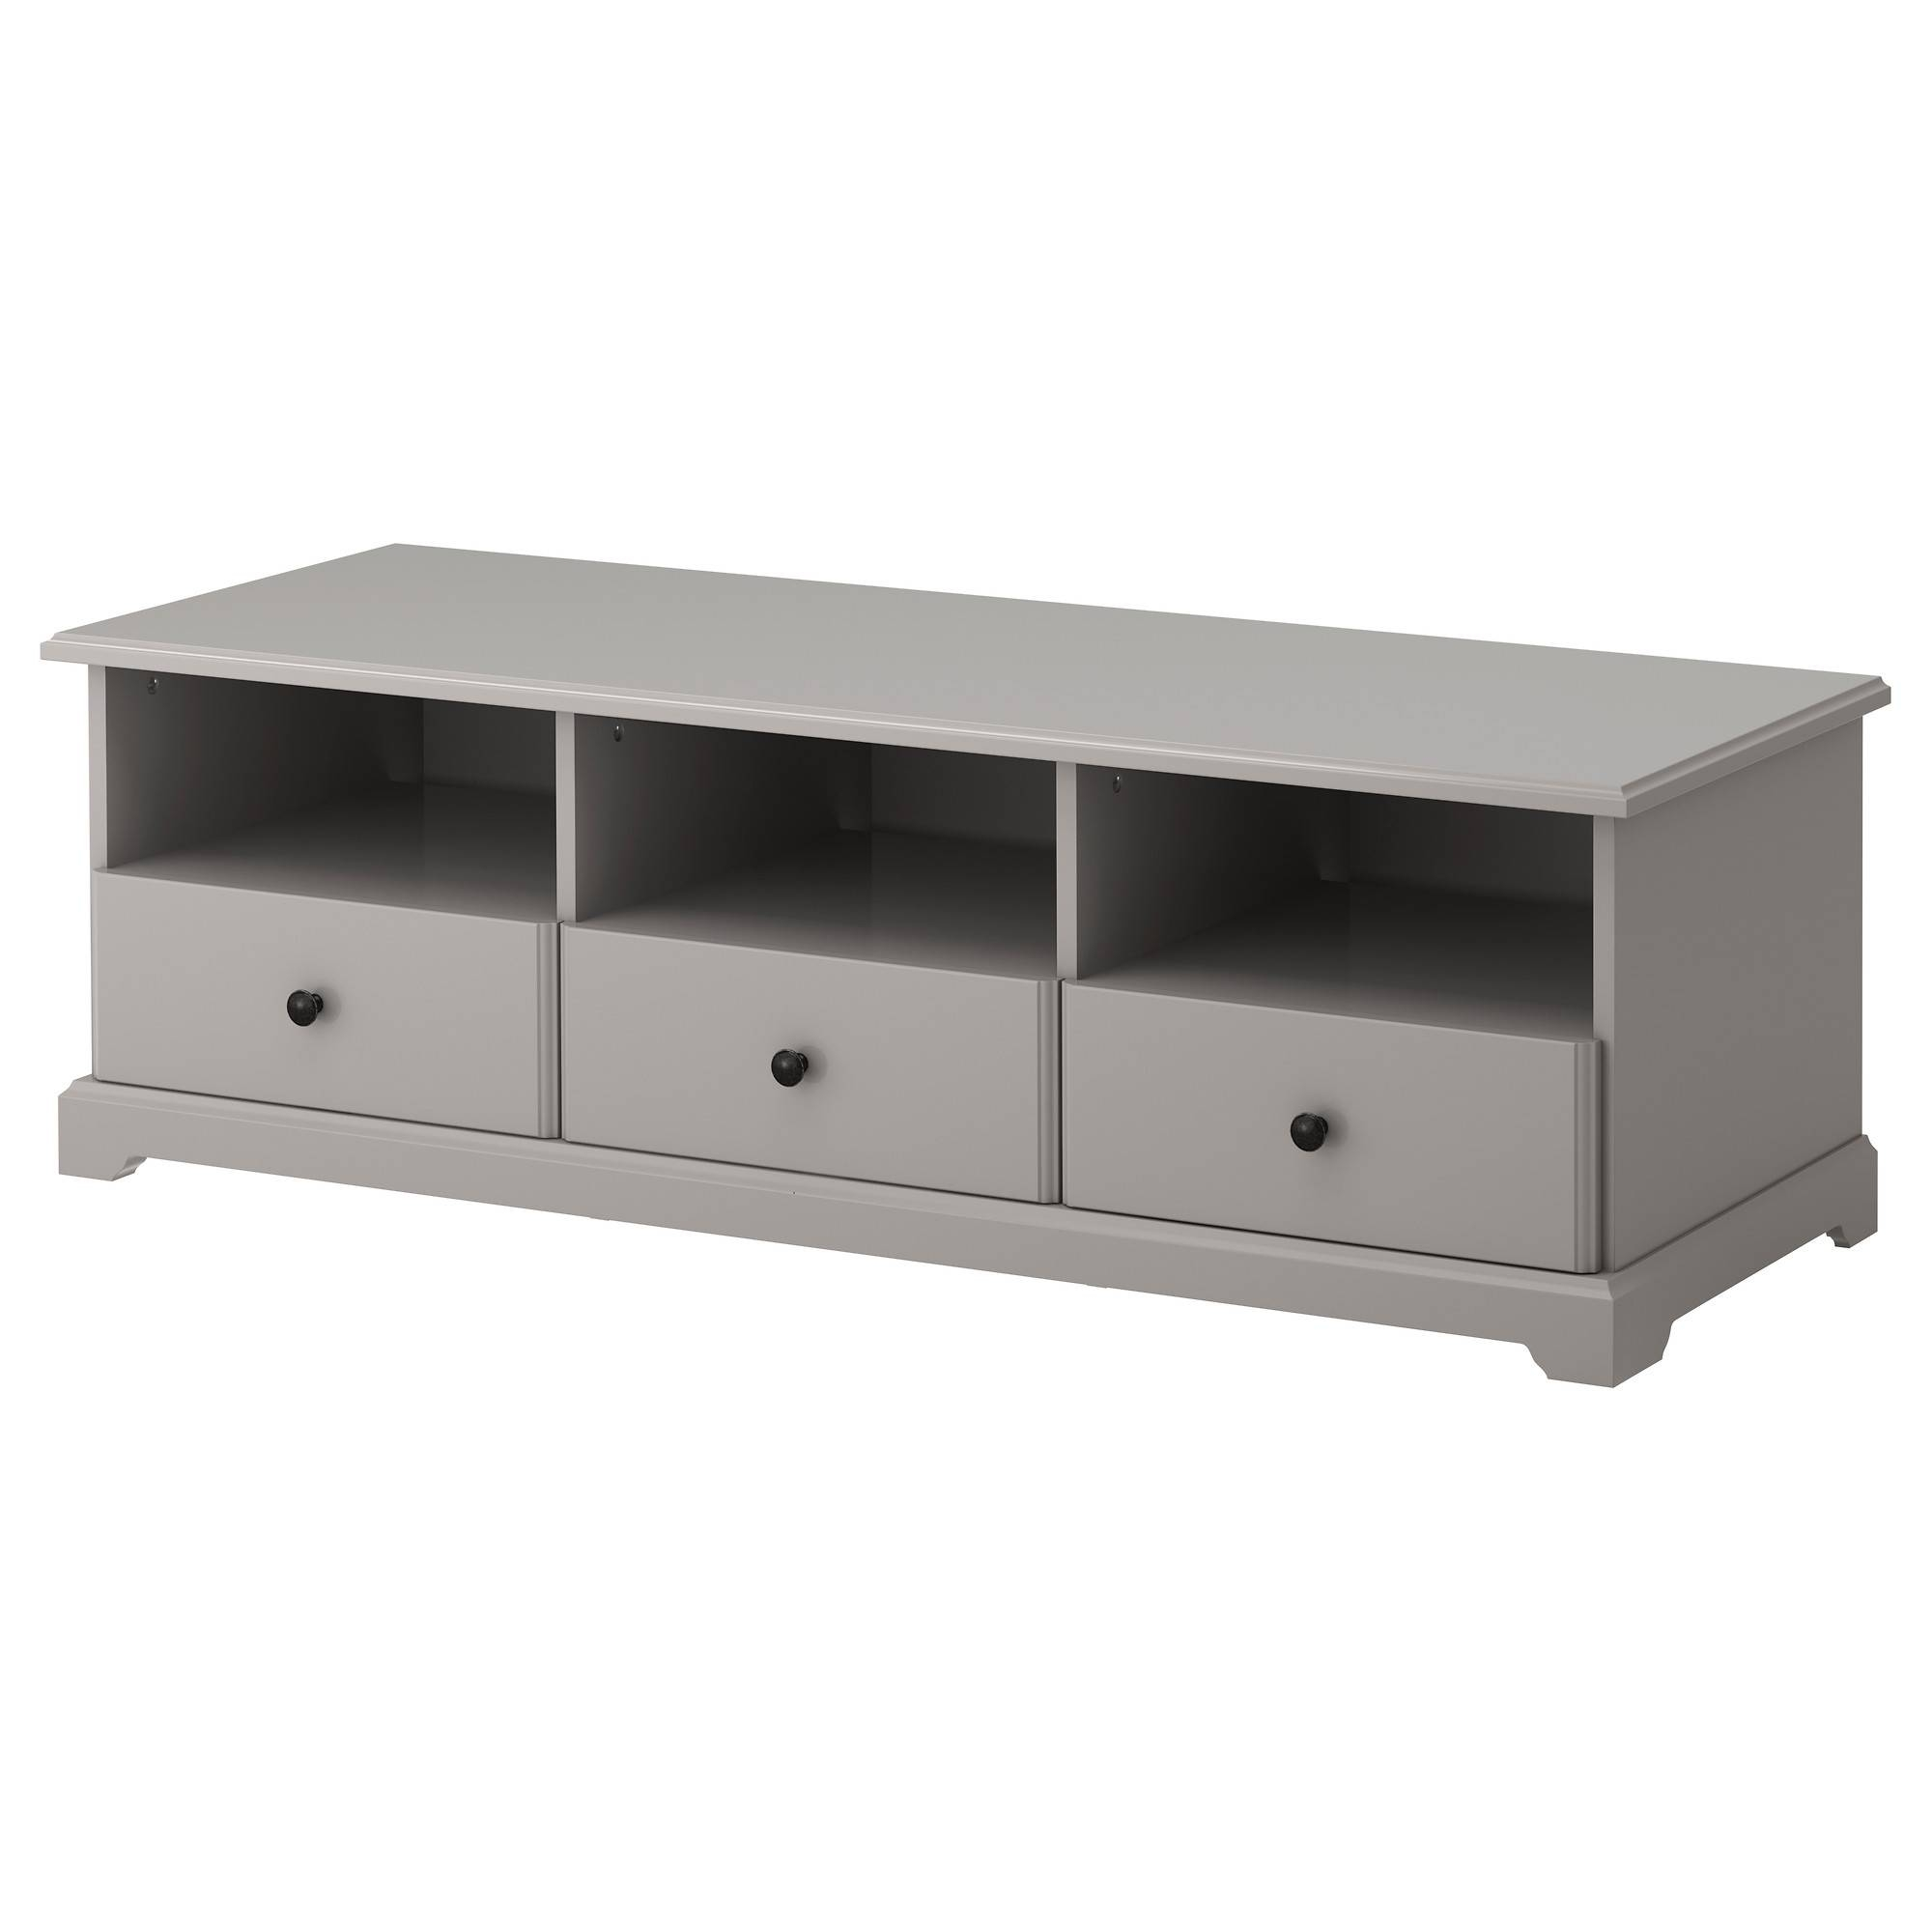 Tv Stands - Ikea for Tv Stands 38 Inches Wide (Image 15 of 15)